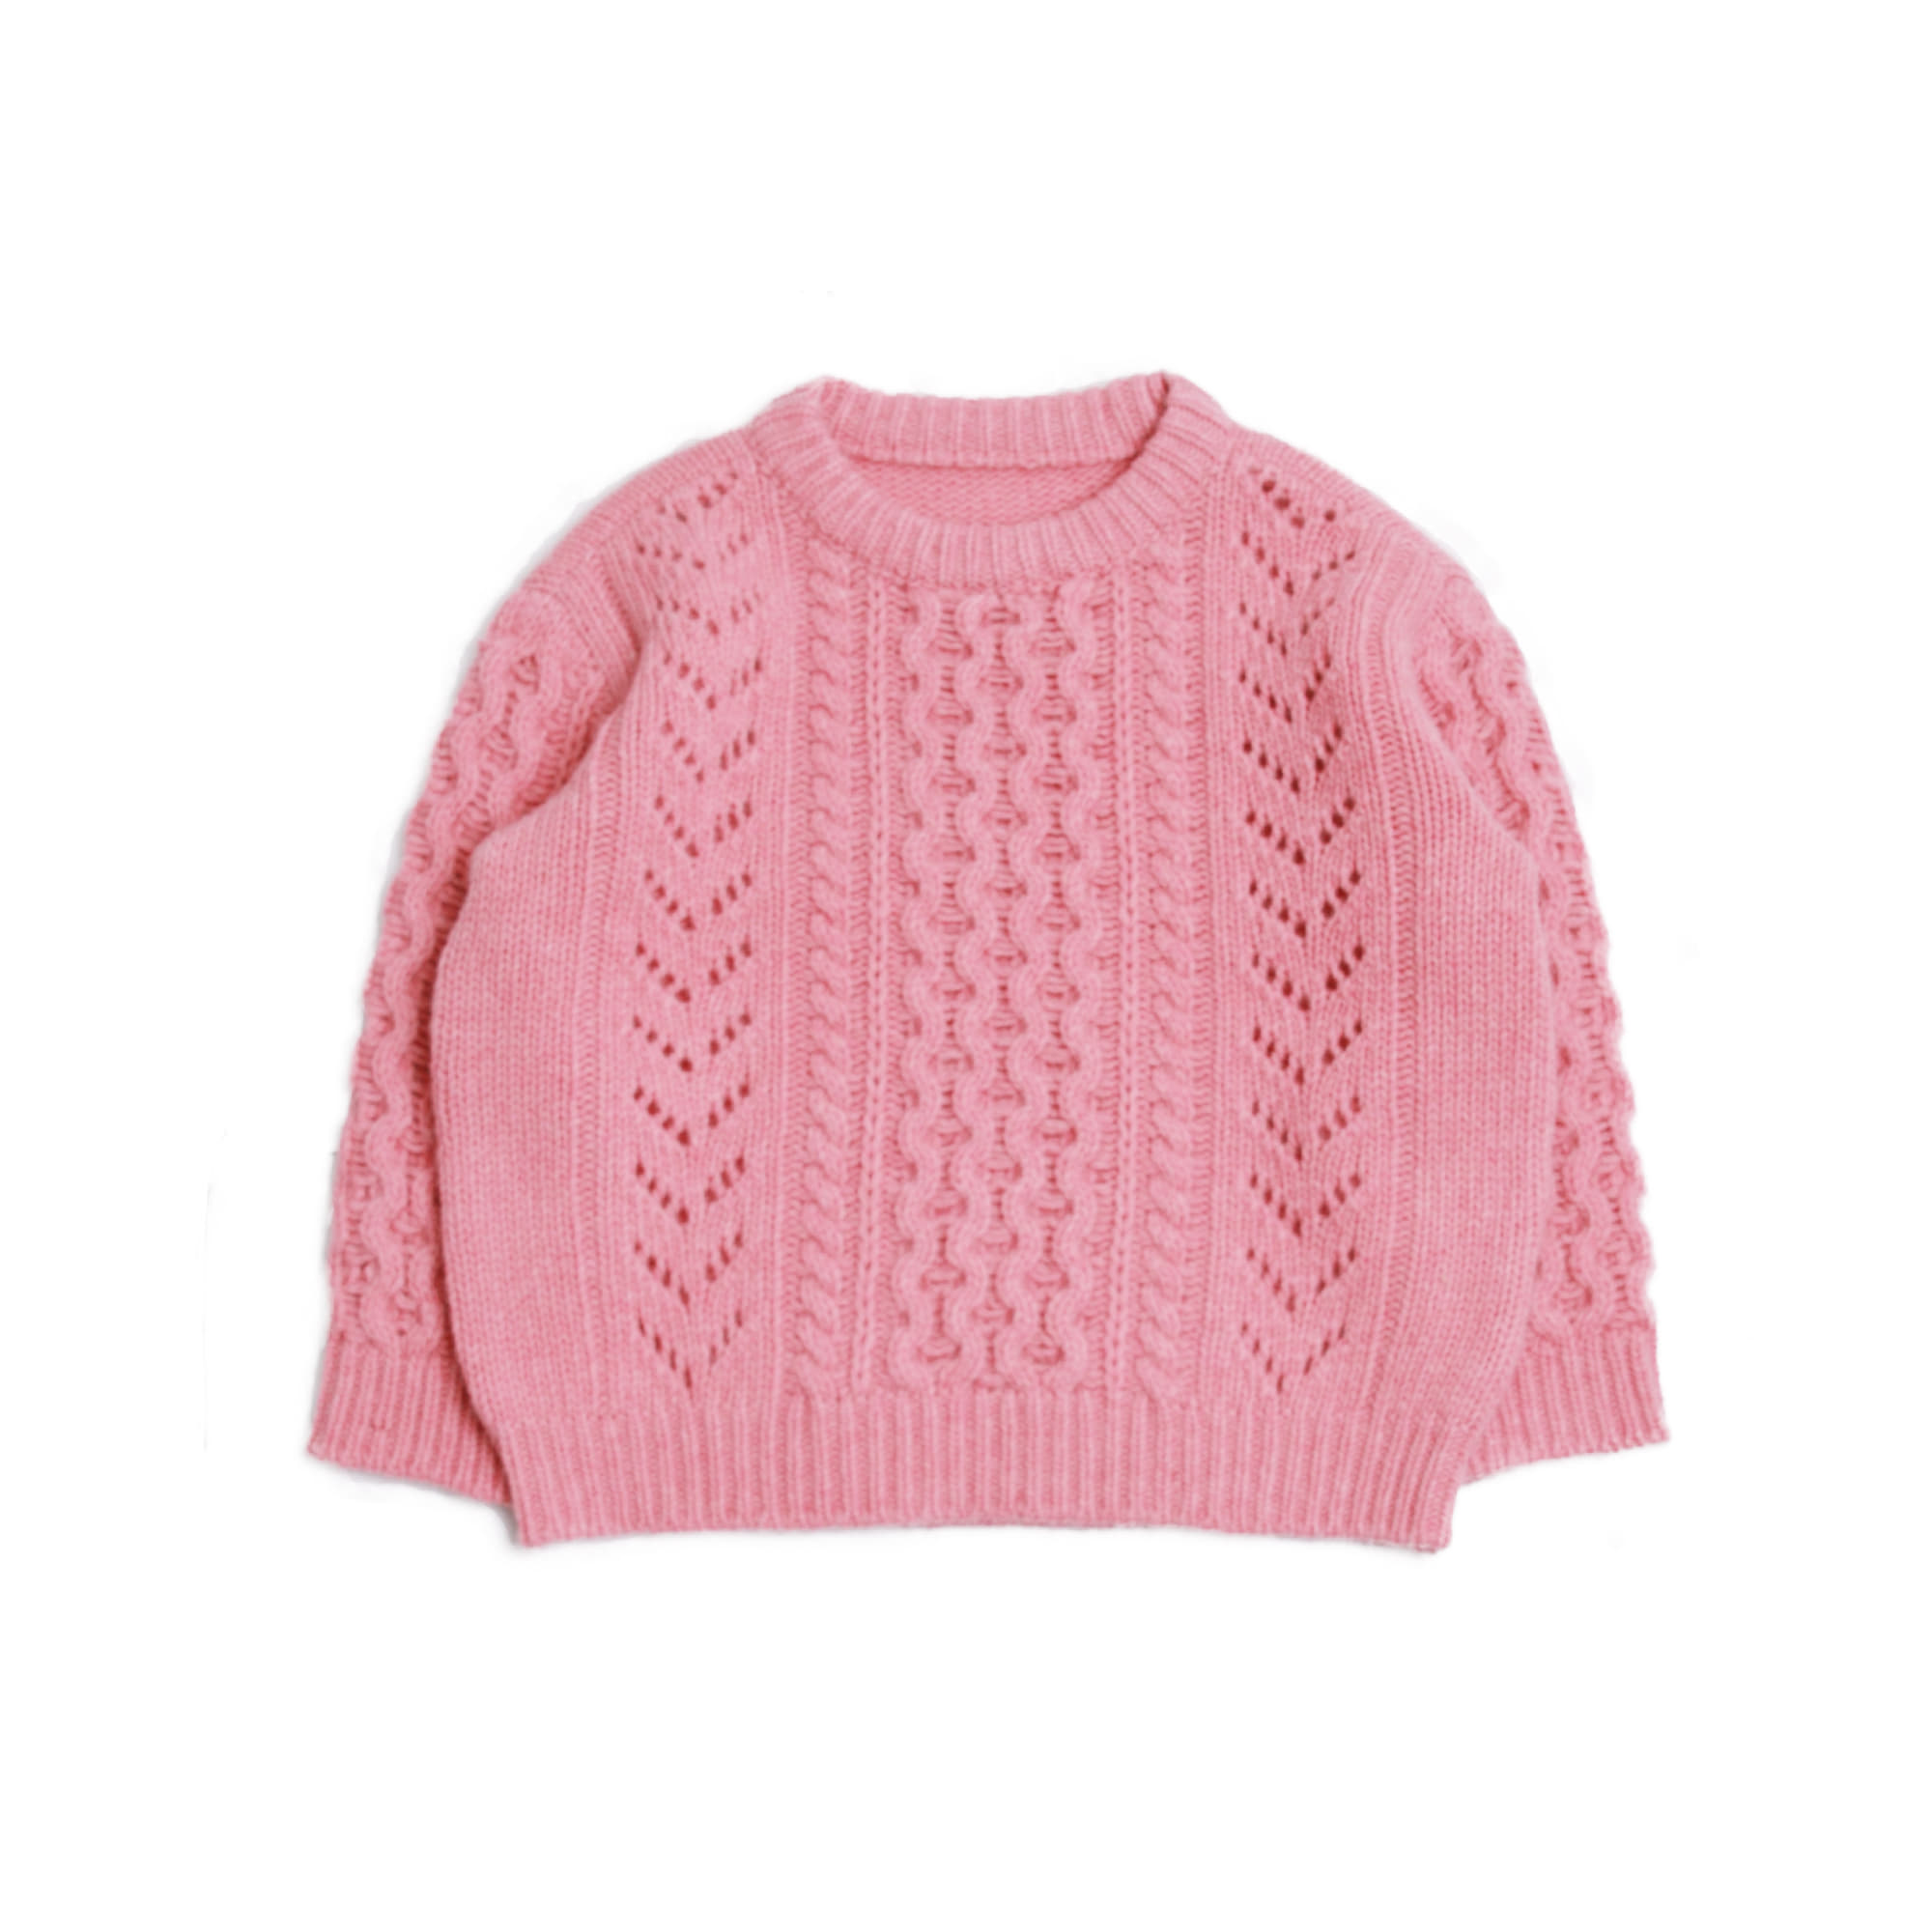 Cable knit - pink (2차 입고, 당일발송)